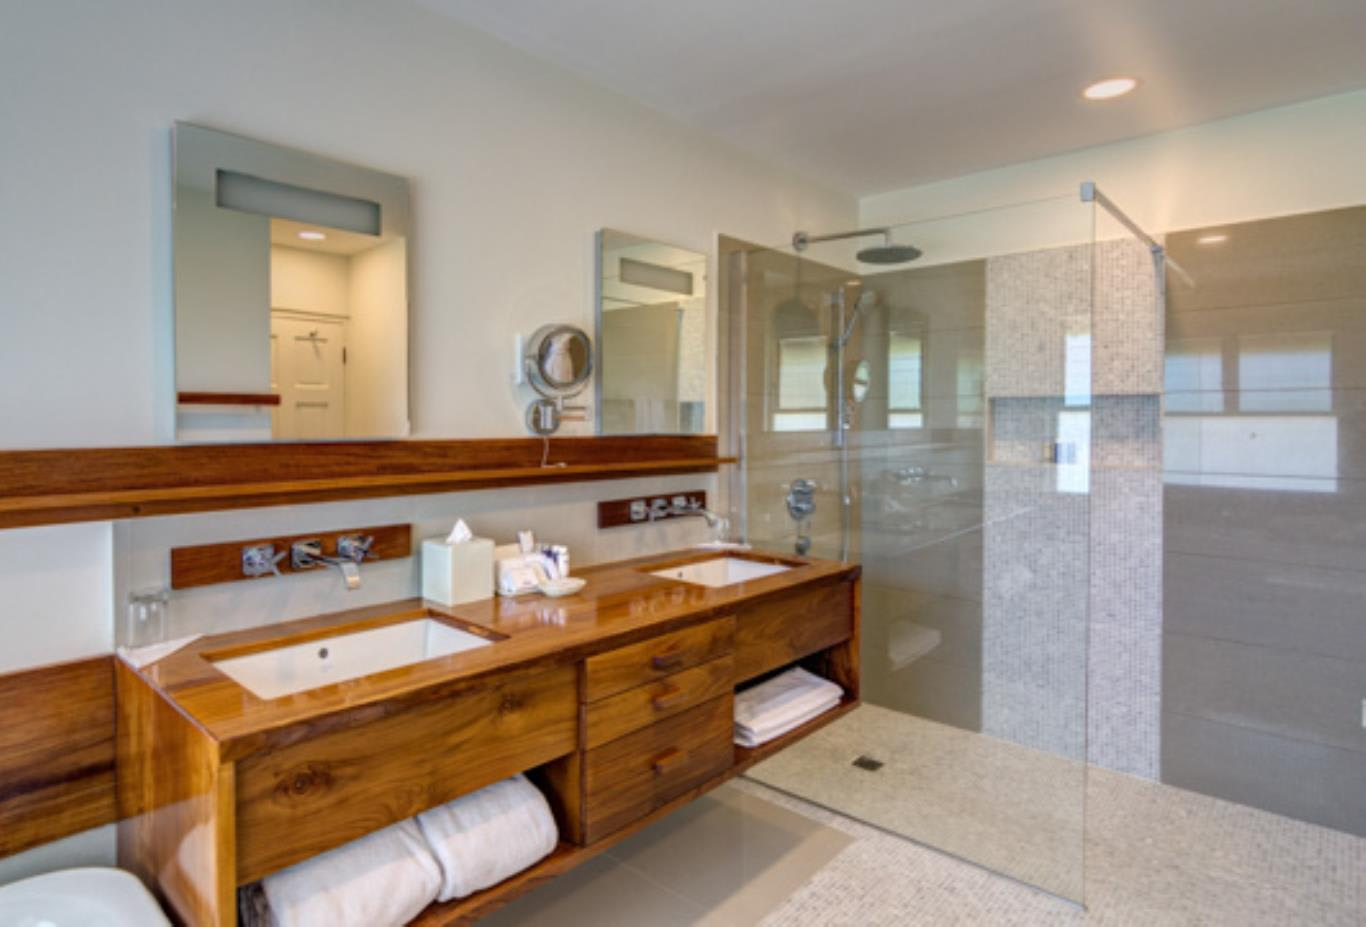 Deluxe Suite Bathroom 2